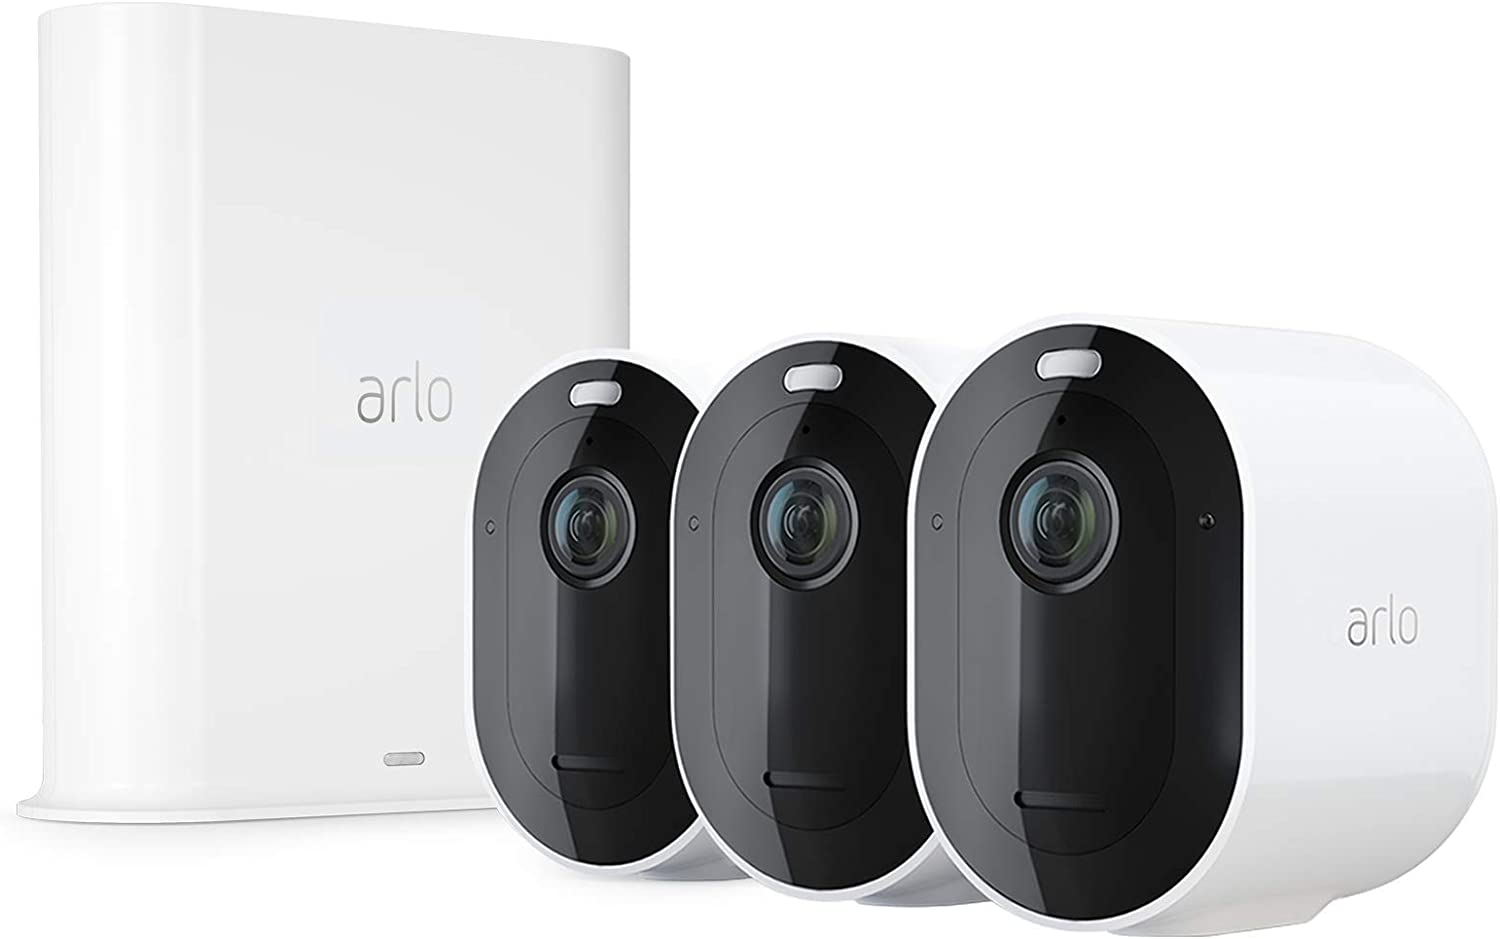 What is the Best Outdoor Security Camera?honestly there are great products to choose from